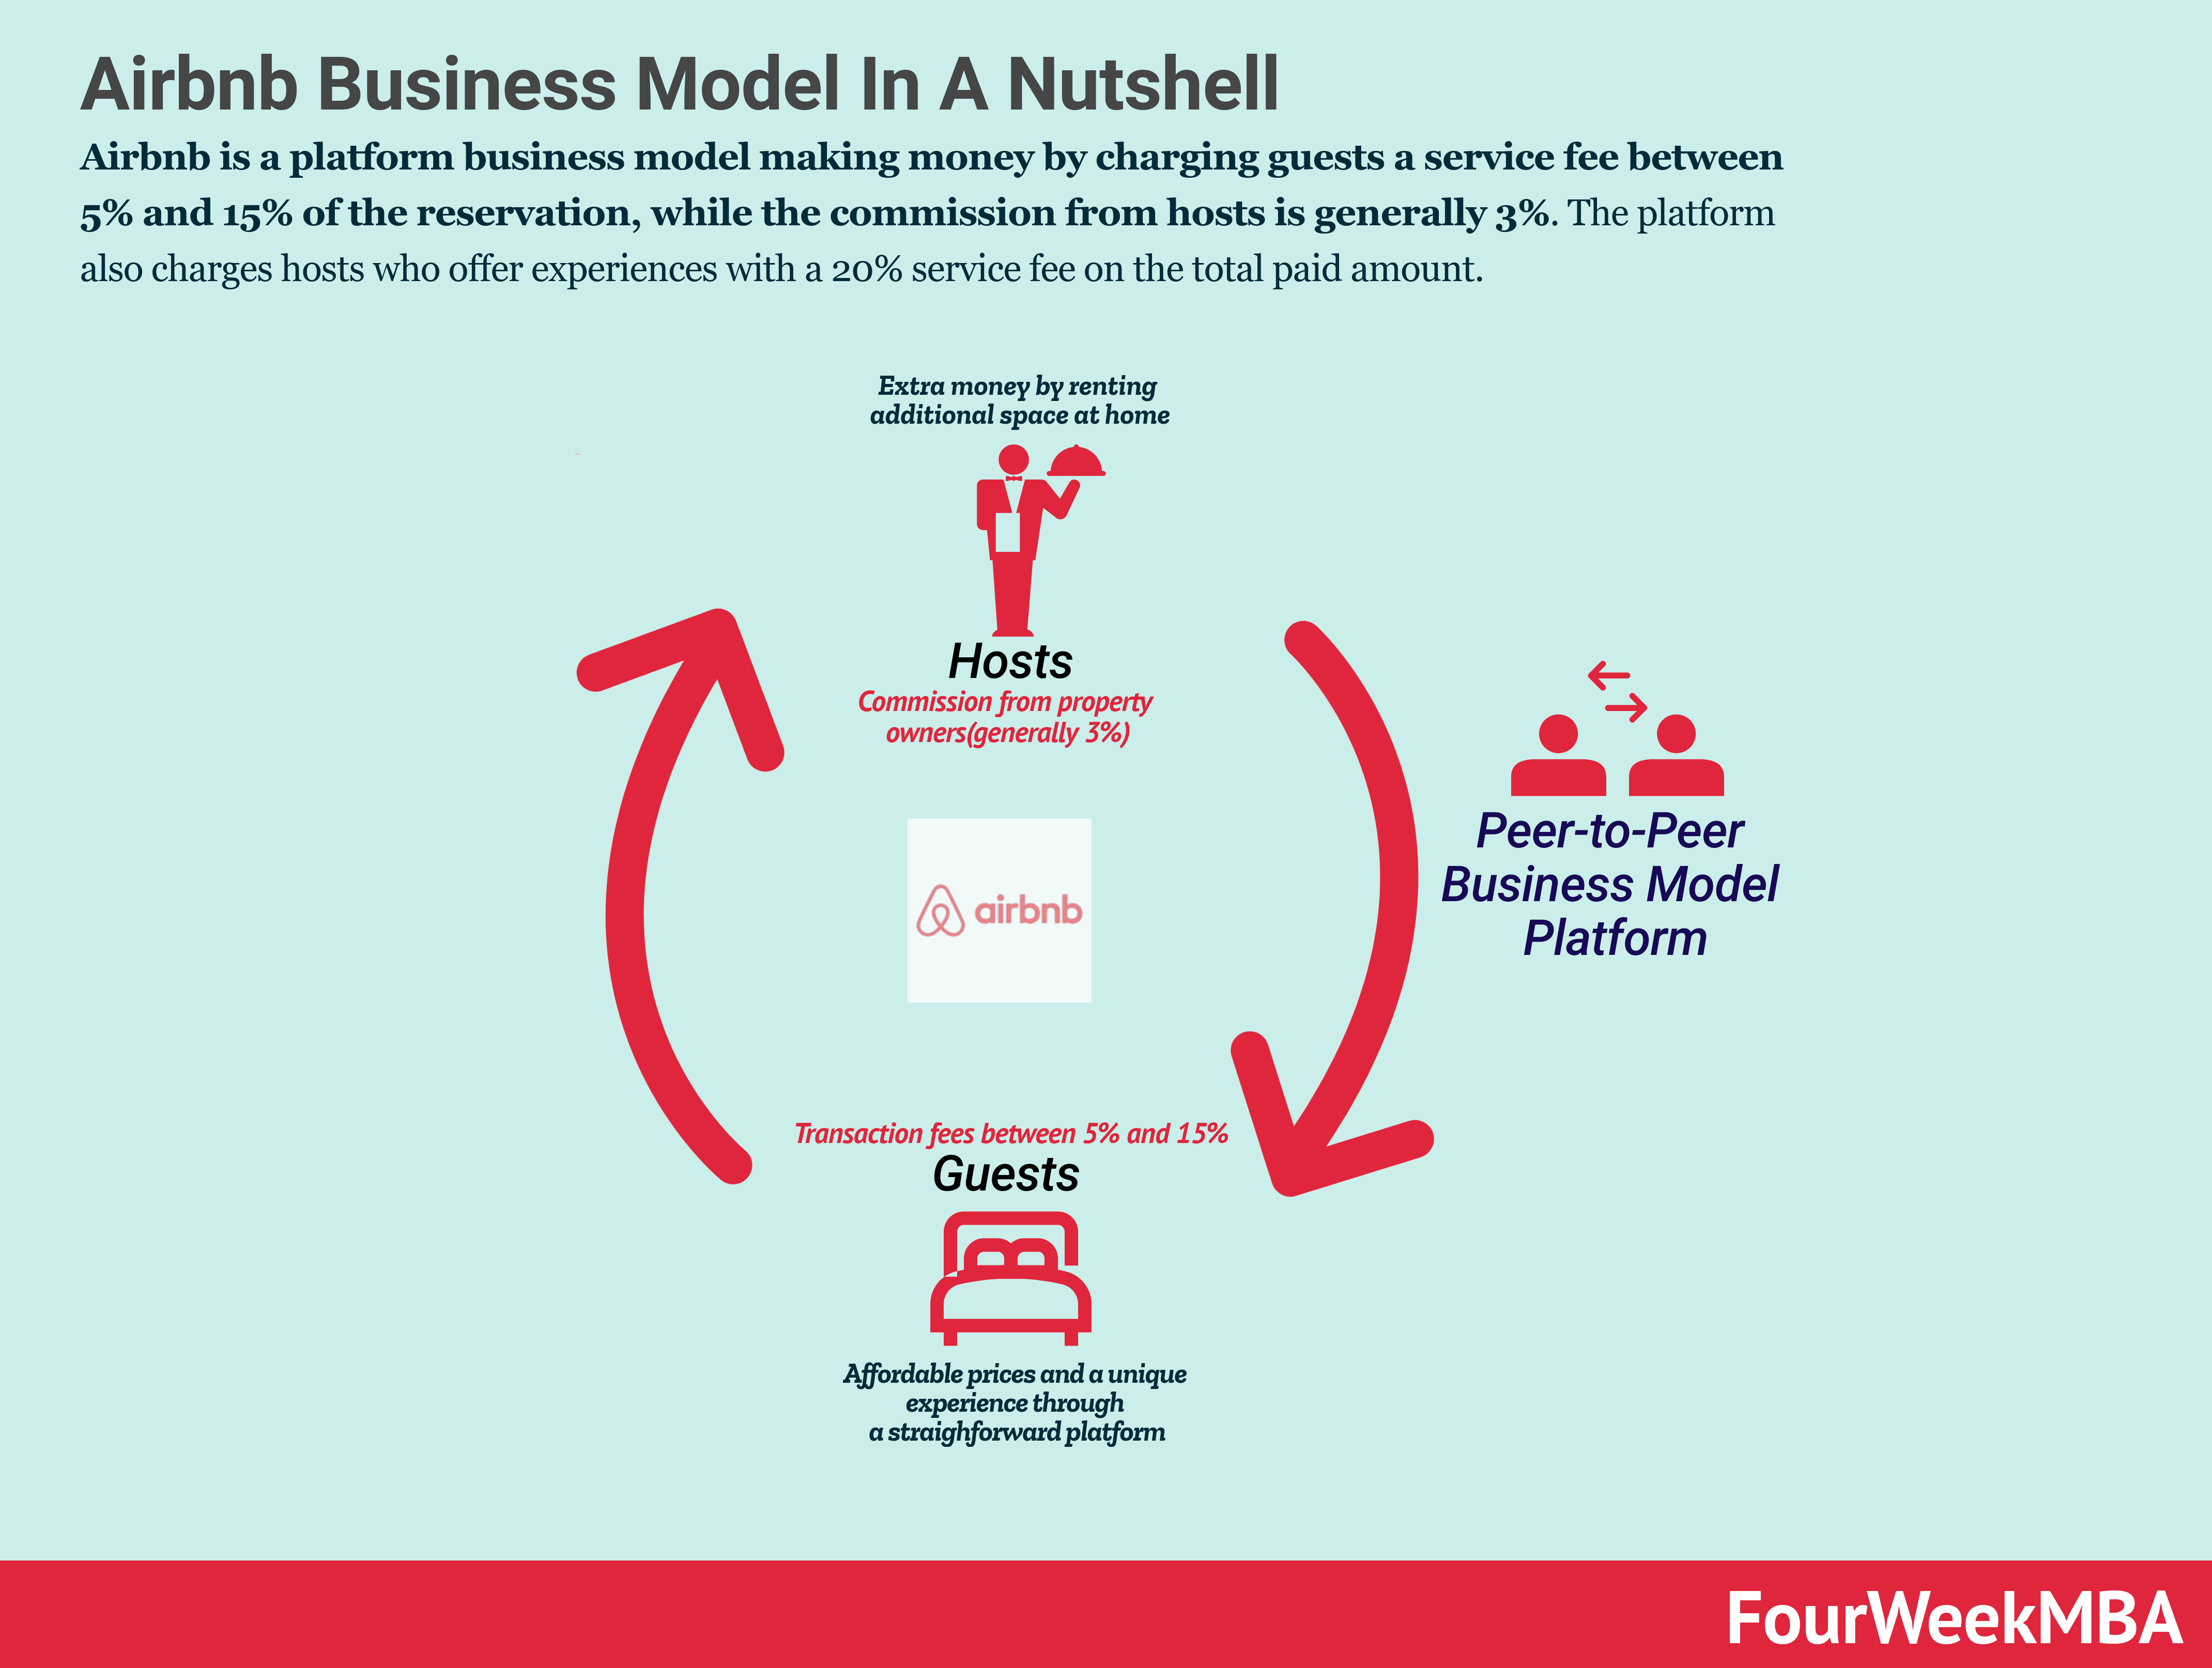 How Does Airbnb Make Money? Airbnb Business Model In A Nutshell